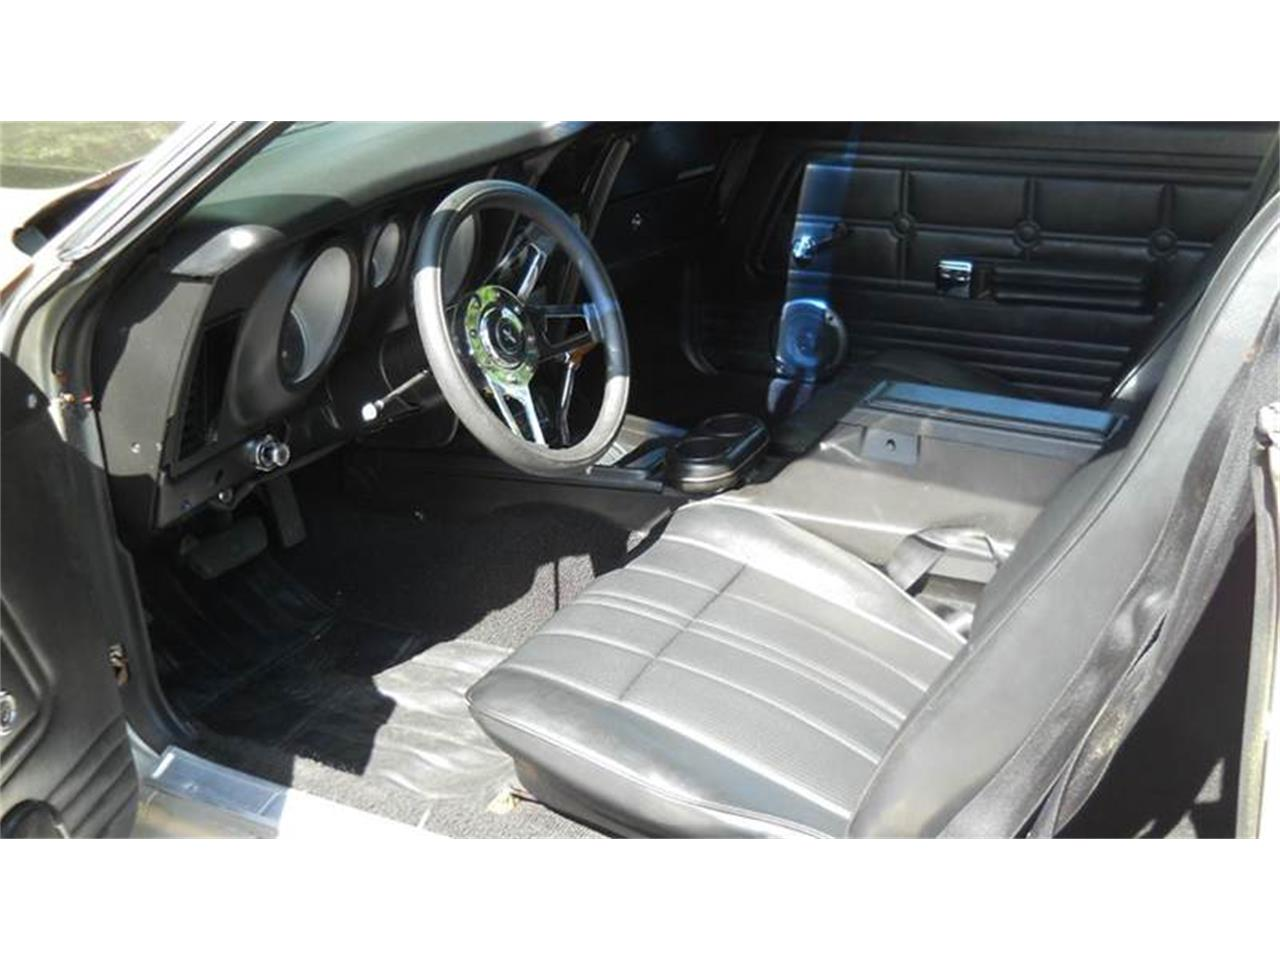 Large Picture of Classic 1972 Mustang located in Thousand Oaks California - $24,995.00 - HF7X